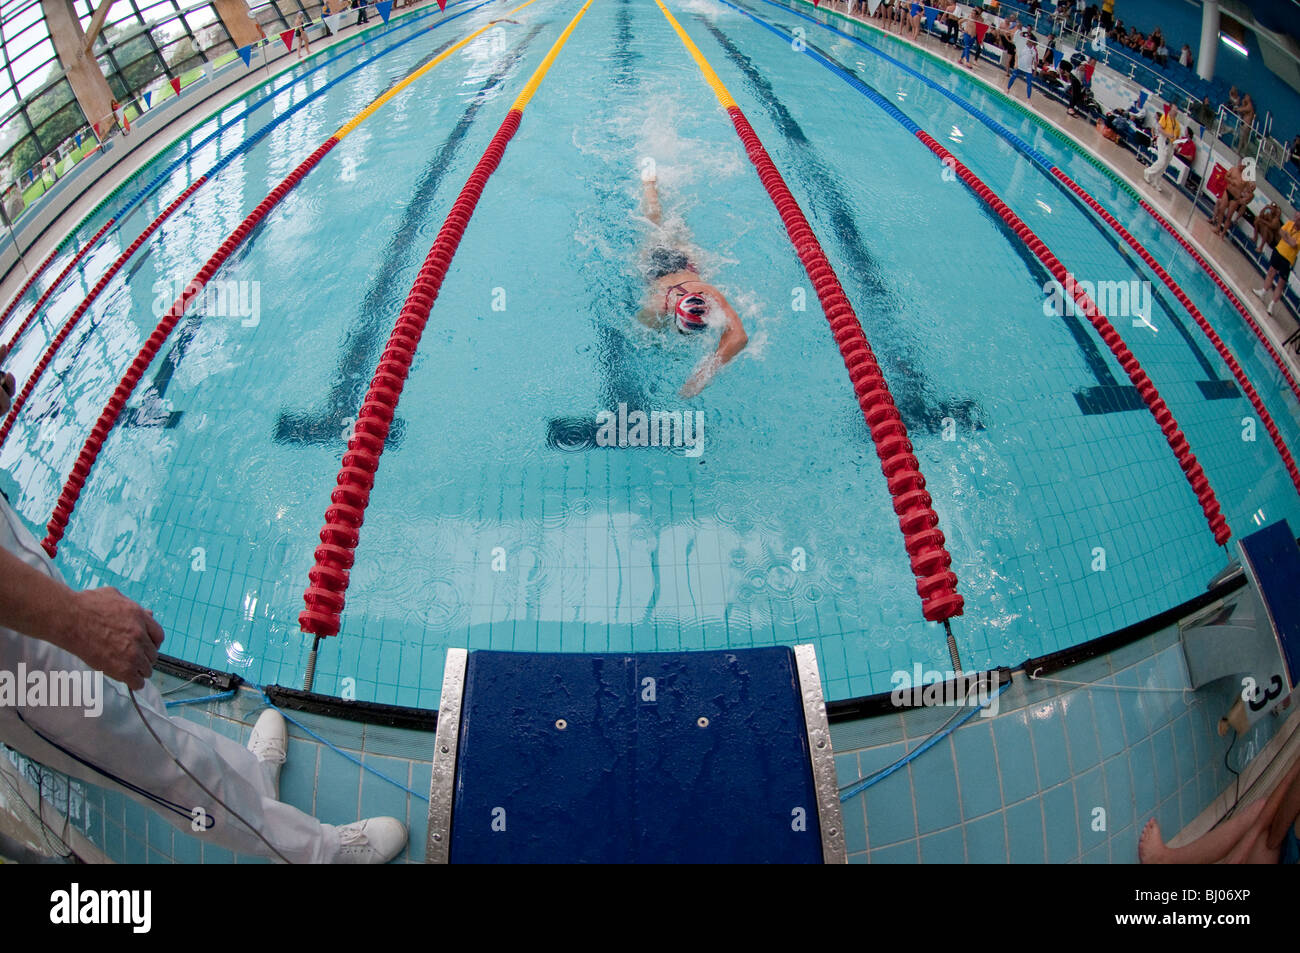 Indoor Swimming Pool Competition Winner At Finish Line Stock Photo Royalty Free Image 28279630